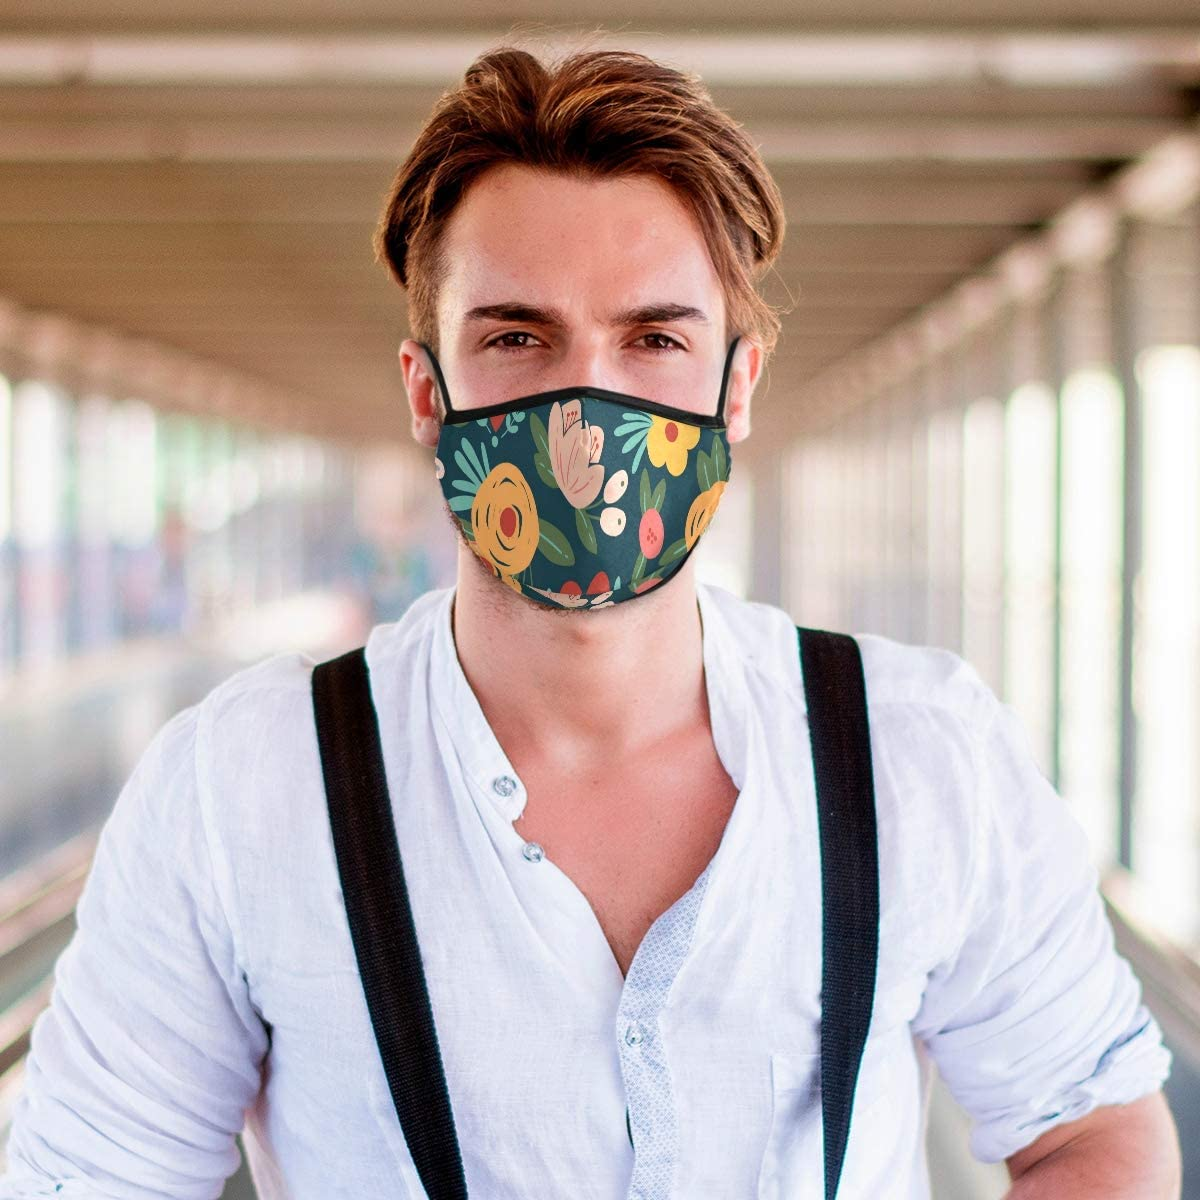 Face Mouth Cover with Activated Carton Filters Cute Floral Pattern Soft Touch Reusable Dustproof Unisex Face Protection